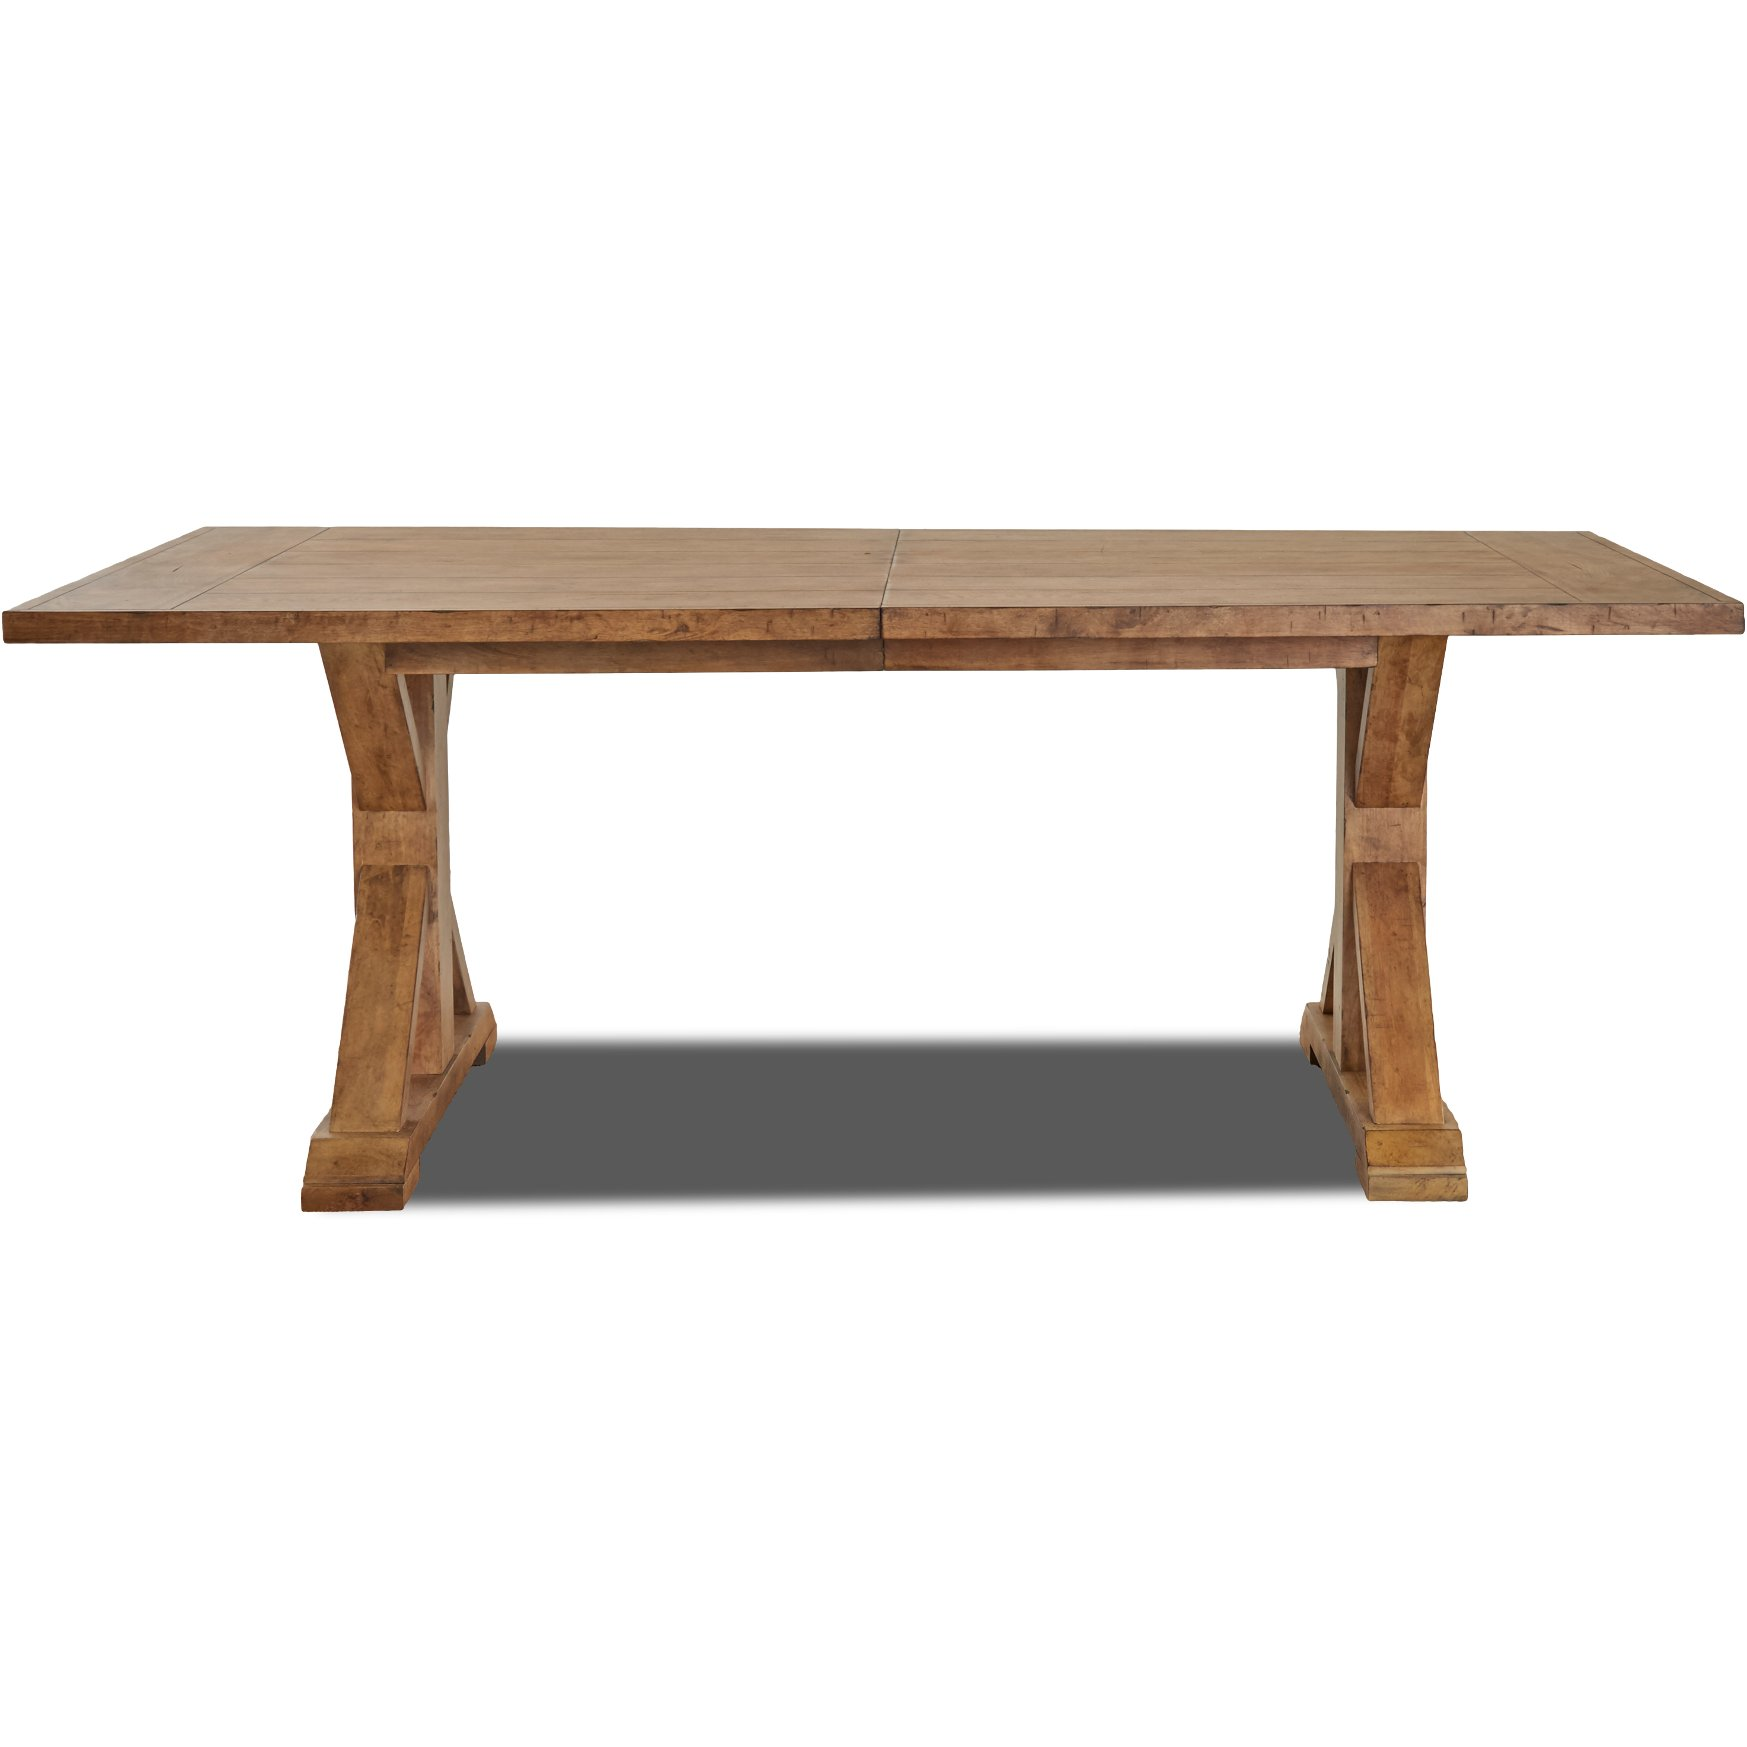 Wheat Brown Farmhouse Dining Table Coming Home RC Willey - Farmhouse conference table